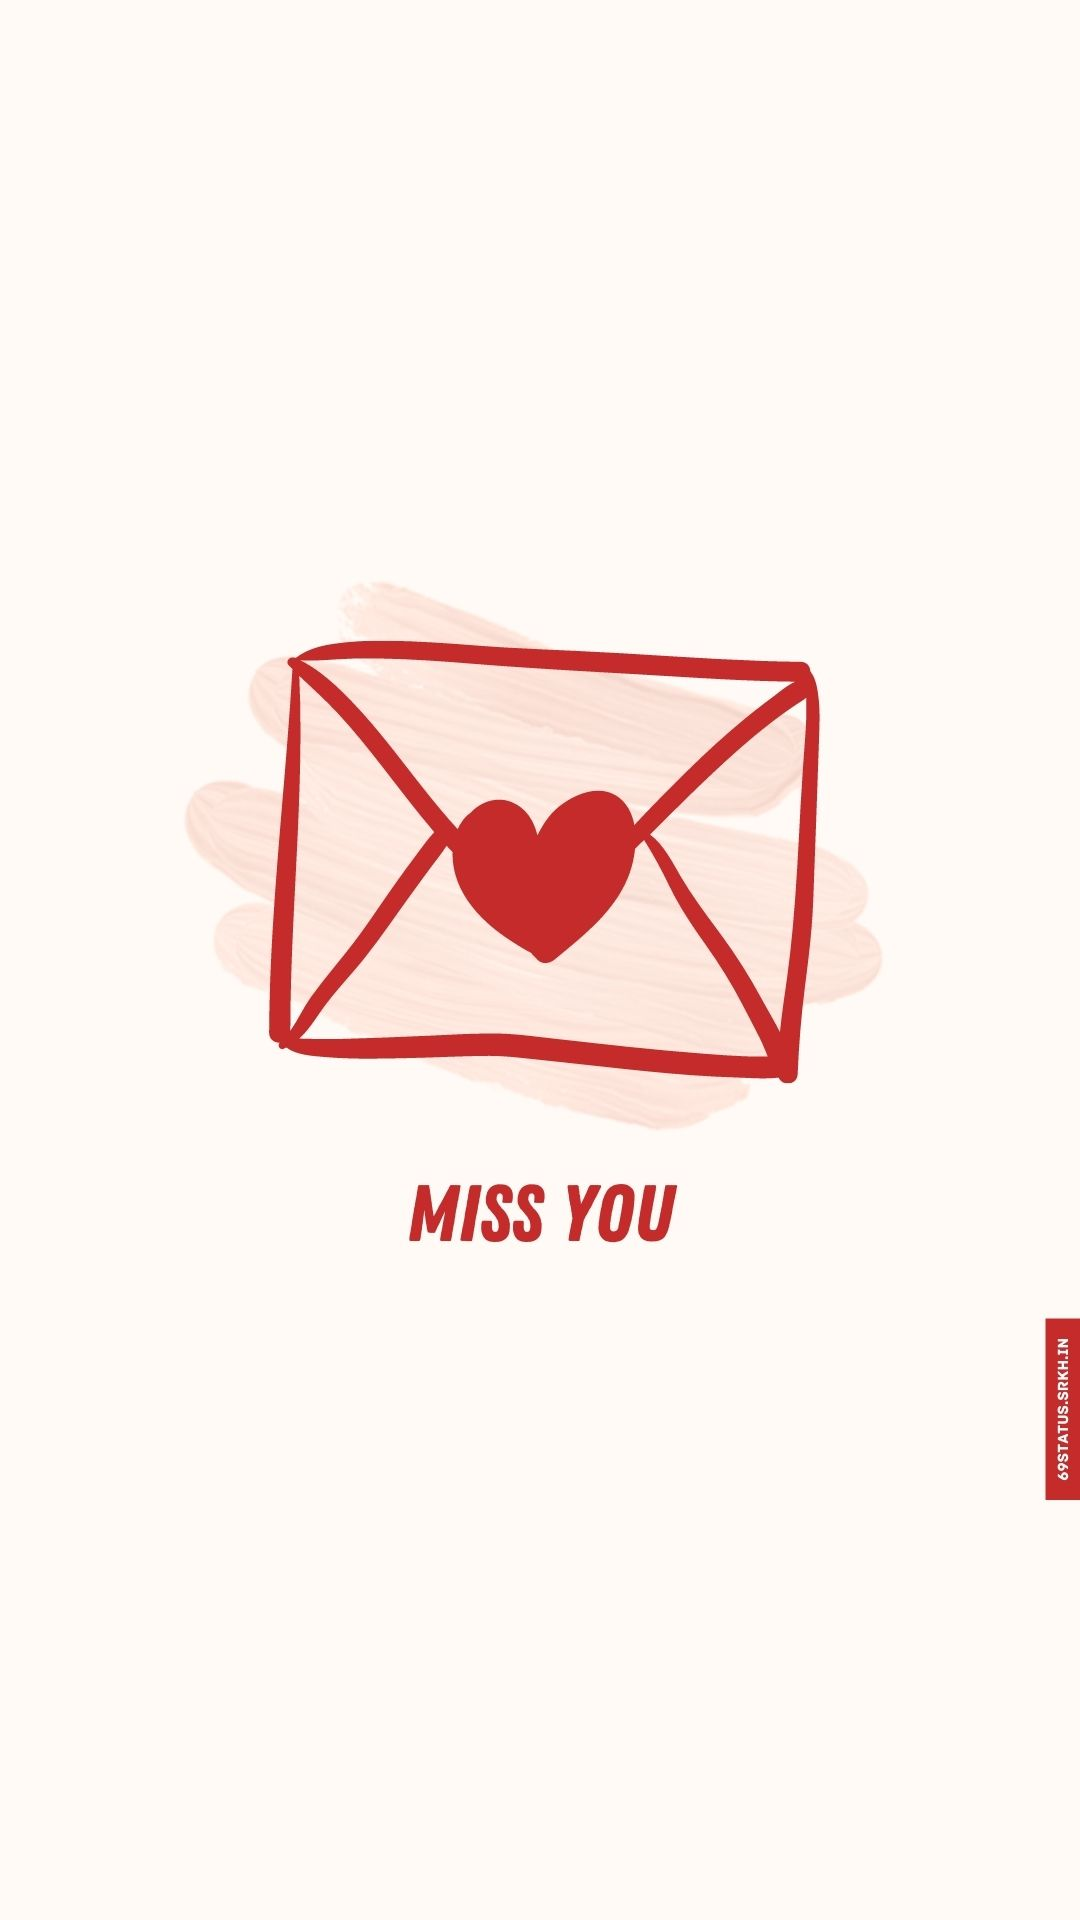 Miss you images wallpaper download for free full HD free download.